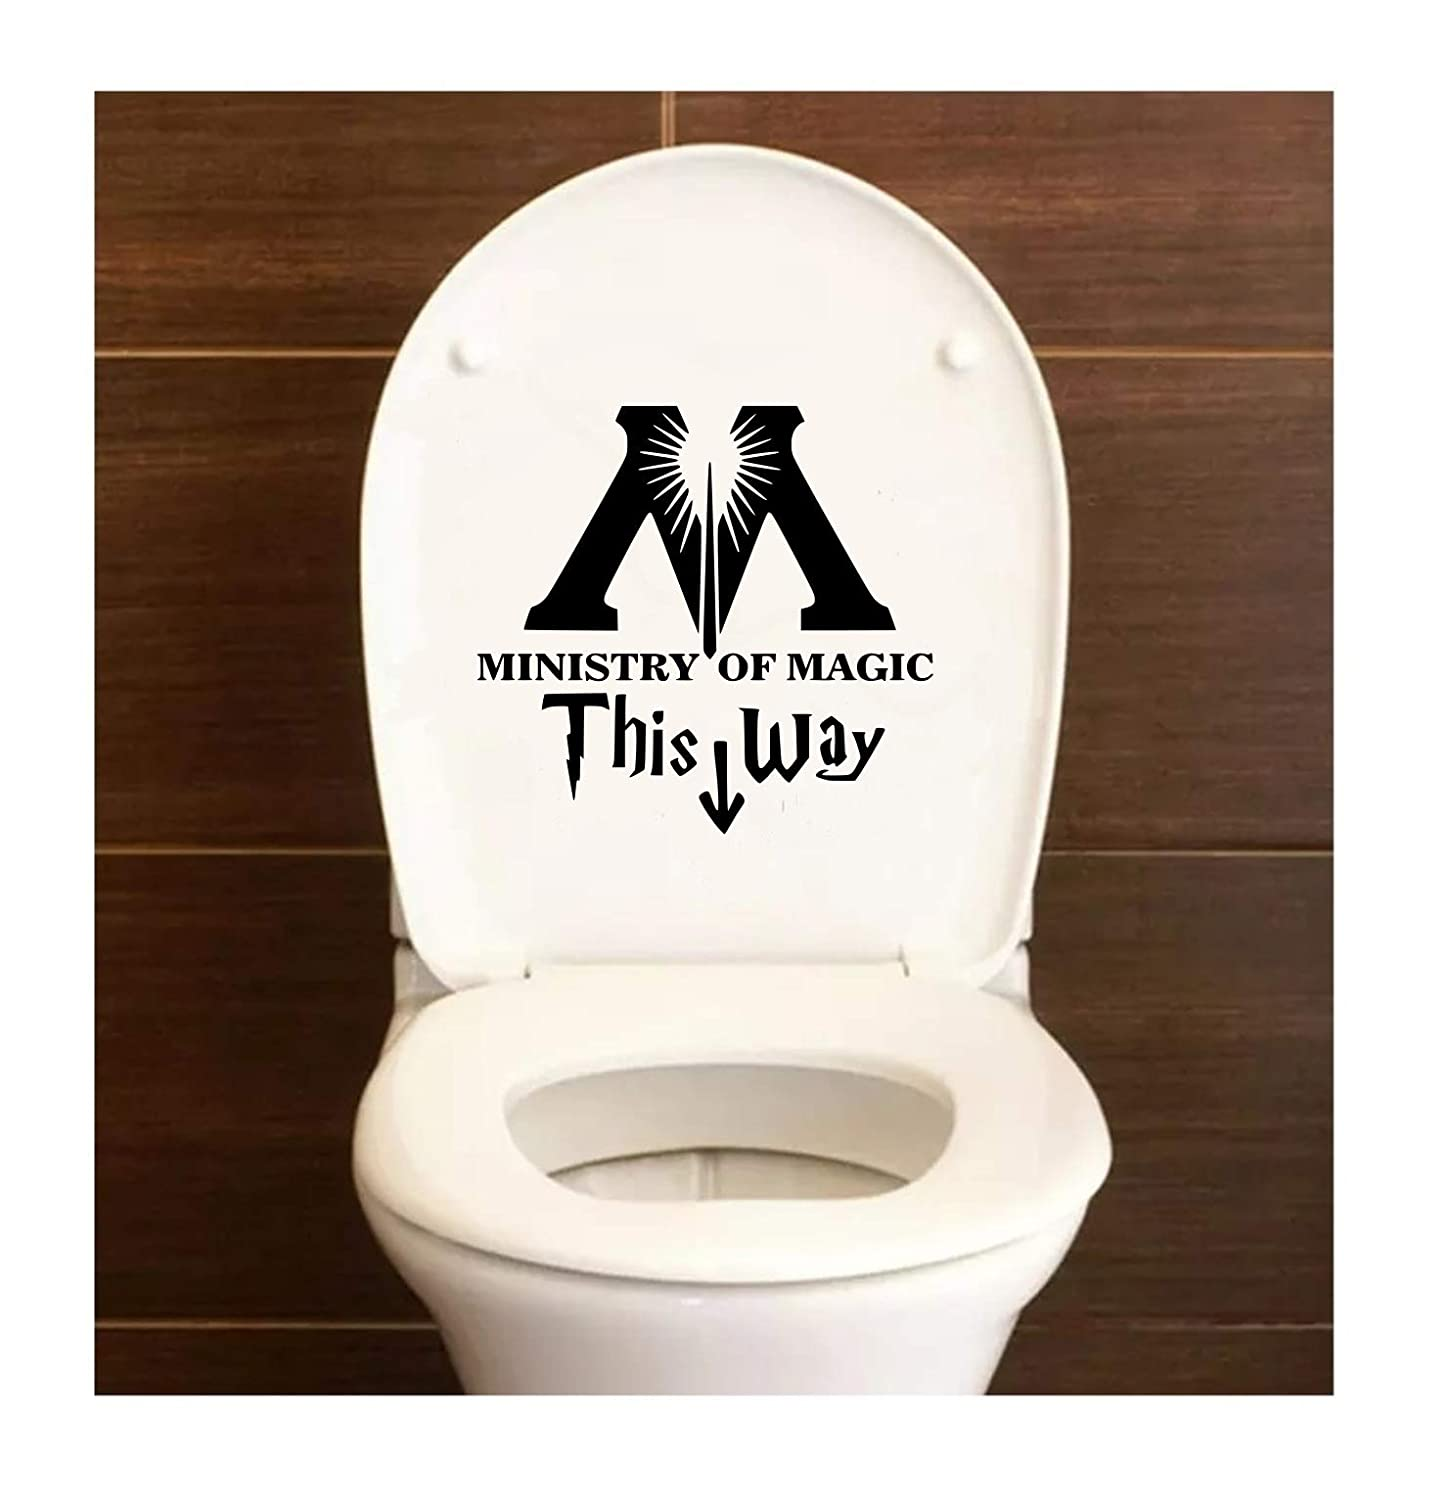 DD084 Ministry Of Magic This Way Harry Potter Inspired Decal Sticker | 7.5-Inches By 6.4-Inches | Premium Quality Black Vinyl